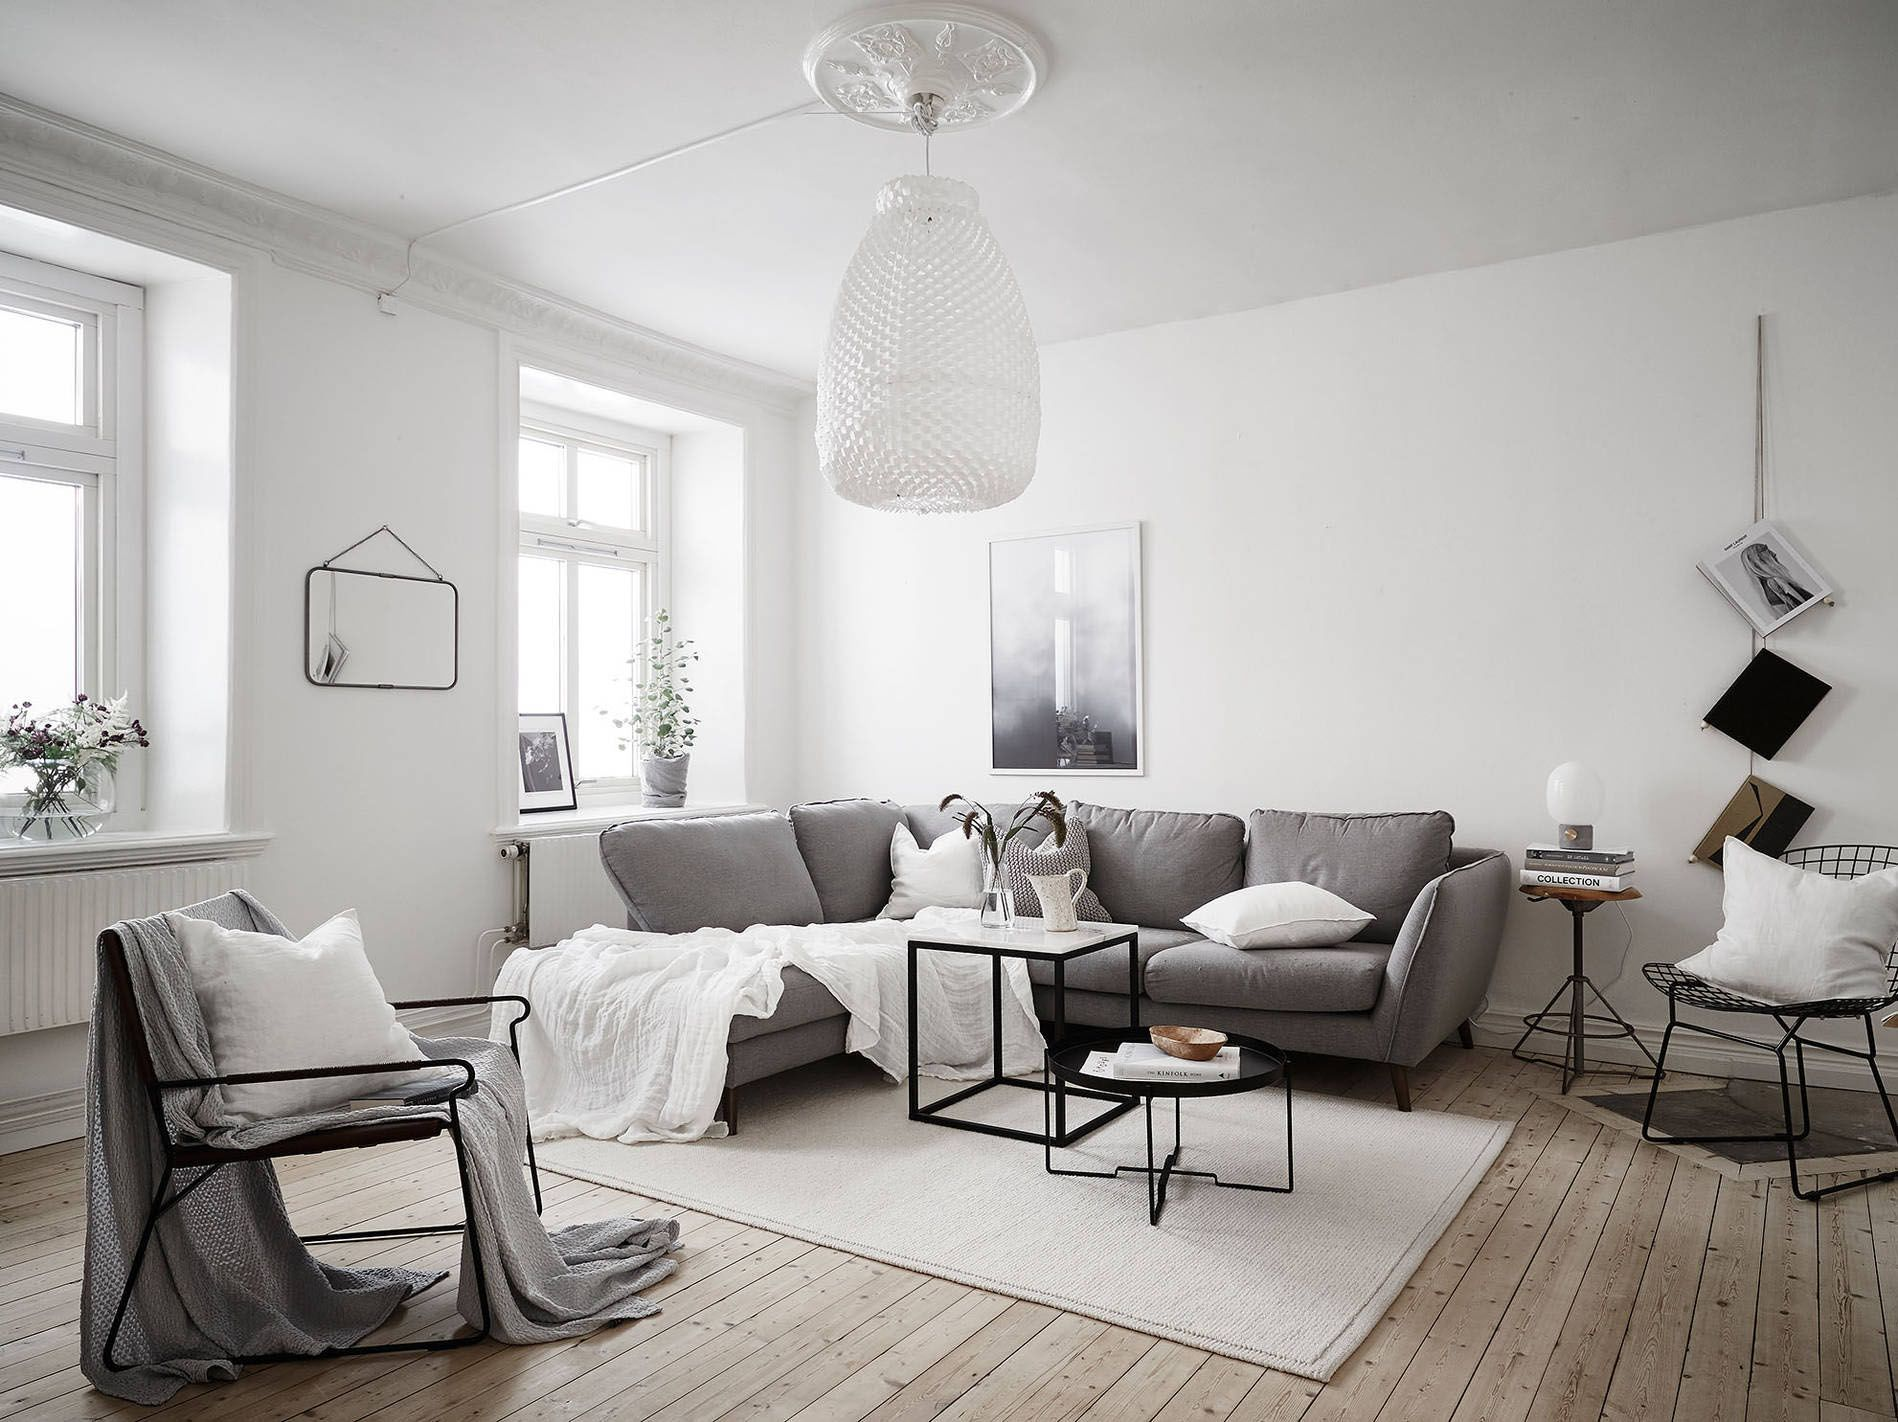 Top 10 Tips For Adding Scandinavian Style To Your Home Living